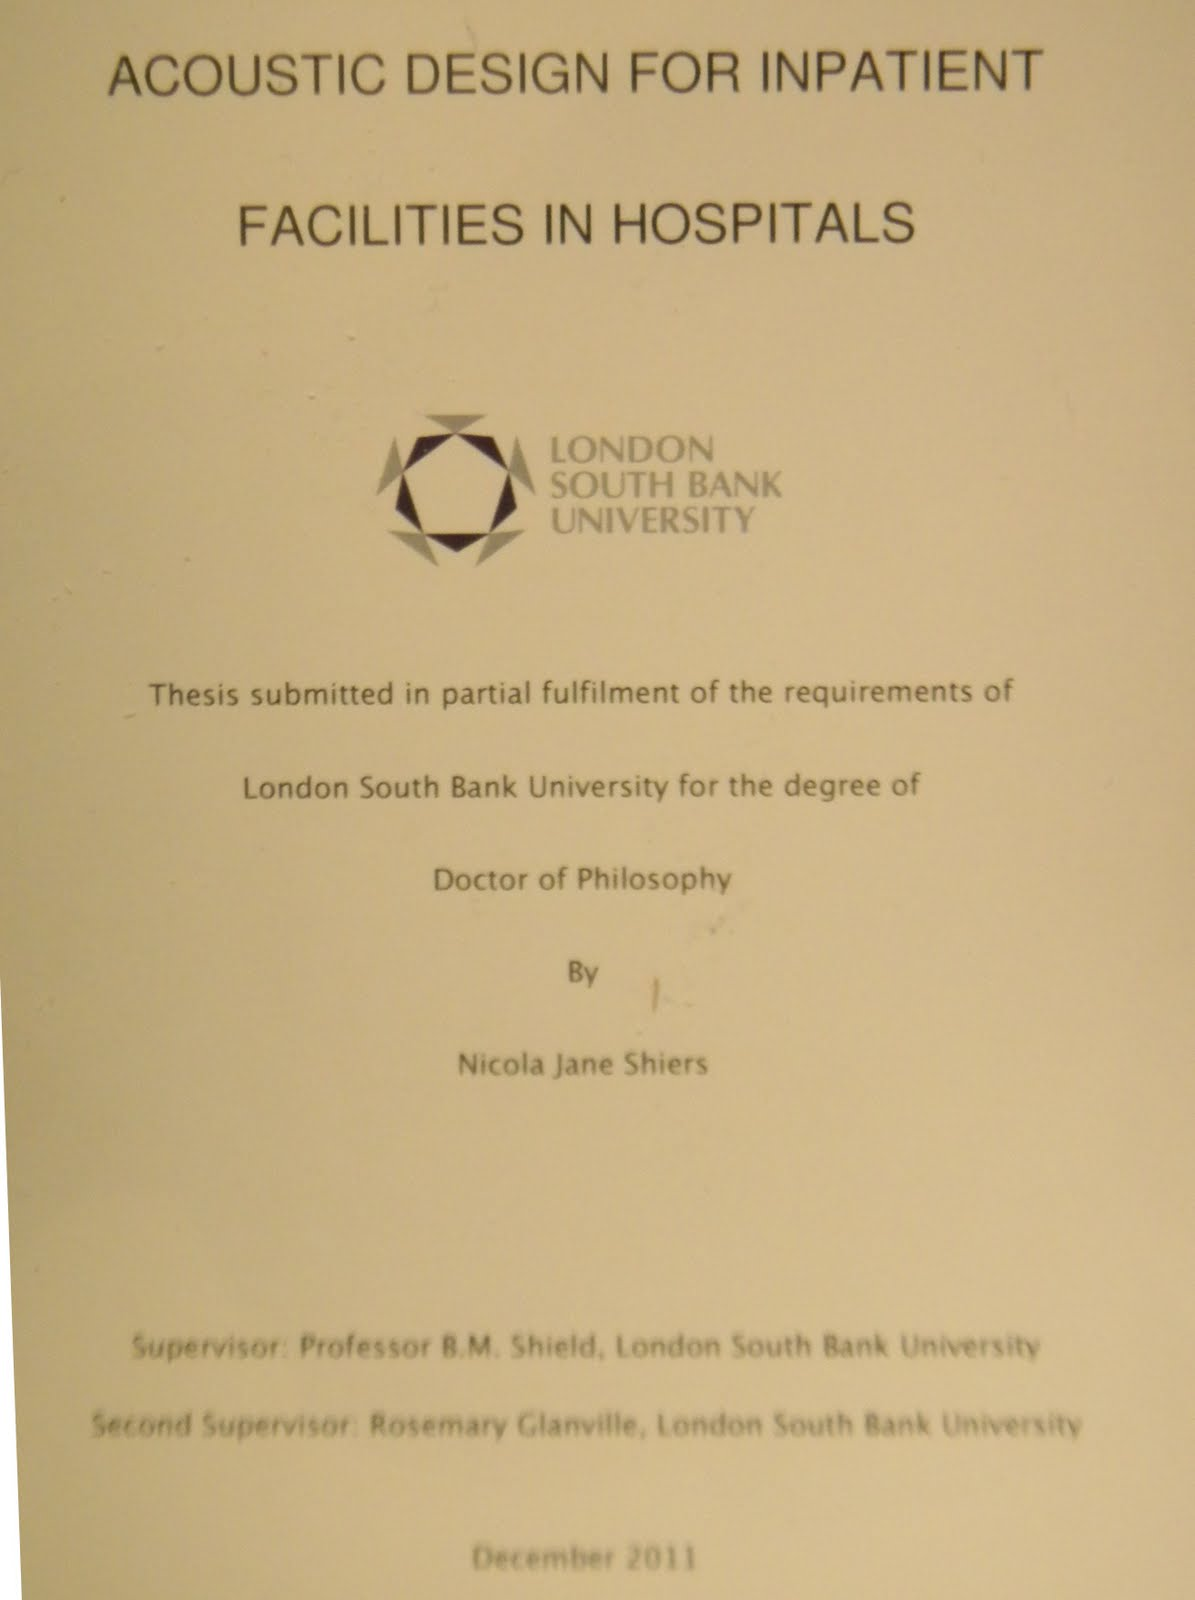 Phd thesis of university of london